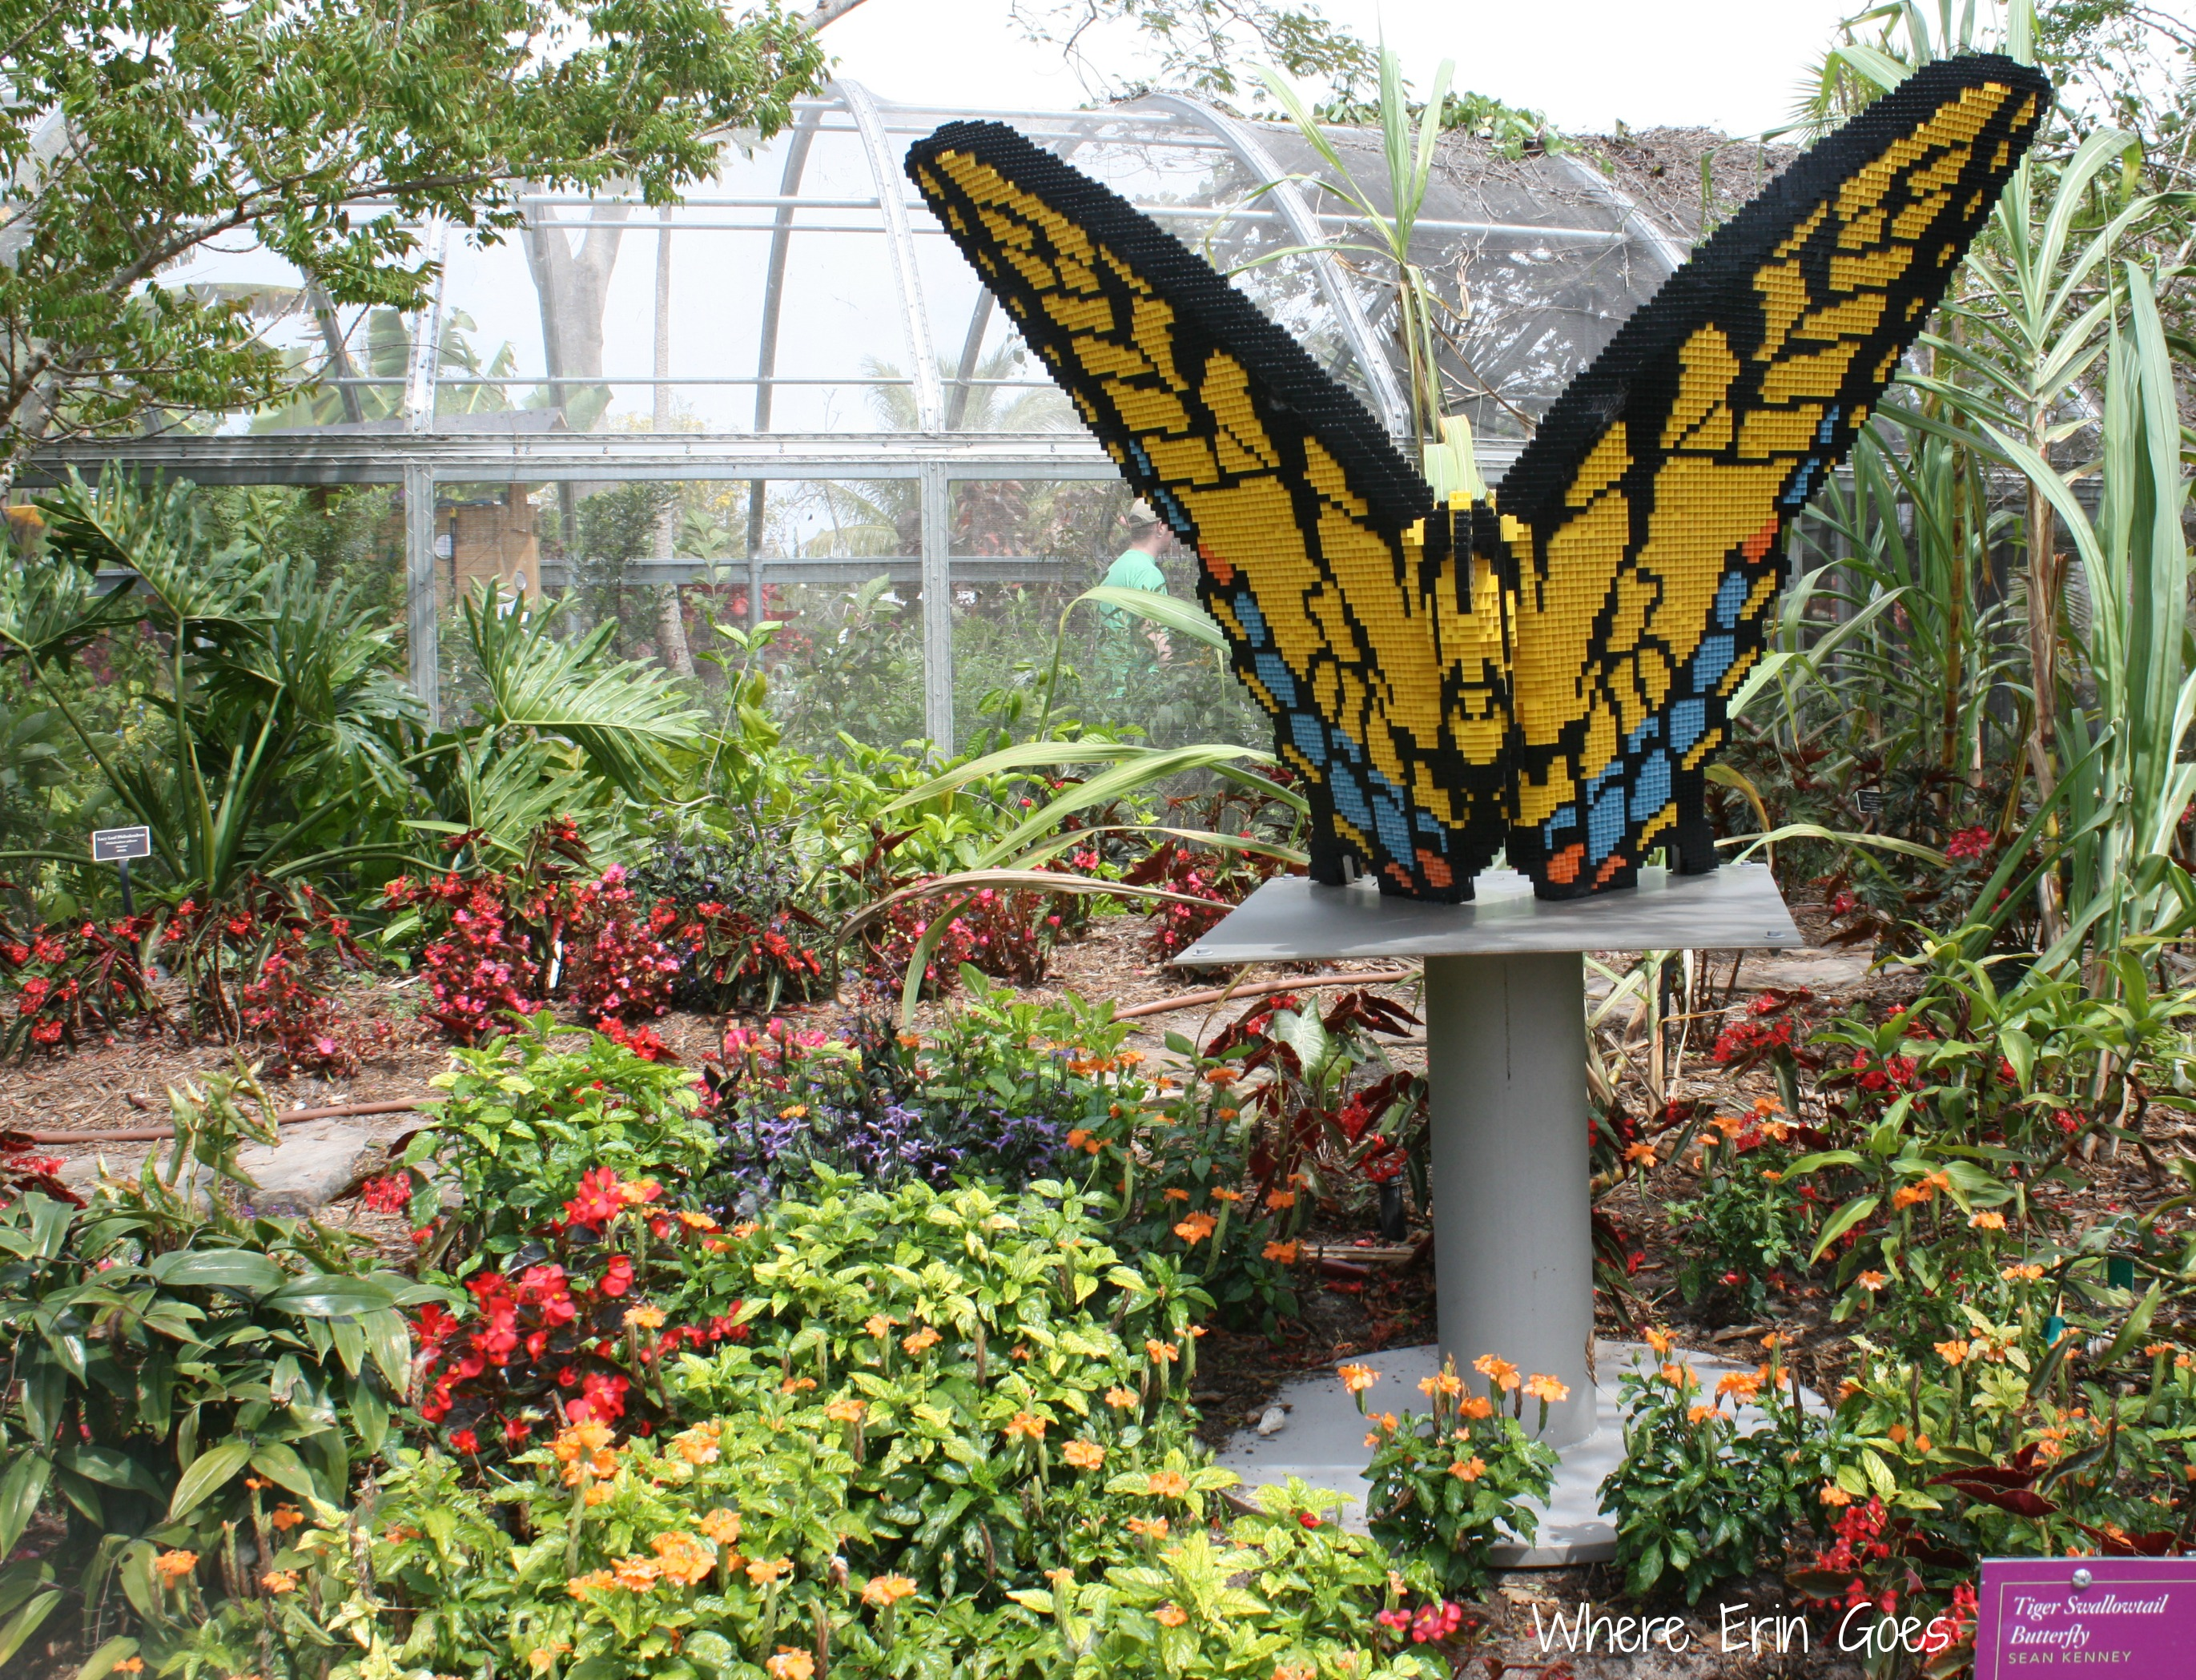 This Tiger Swallowtail Butterfly Is Part Of A LEGO Exhibit At The Naples Botanical  Garden Through